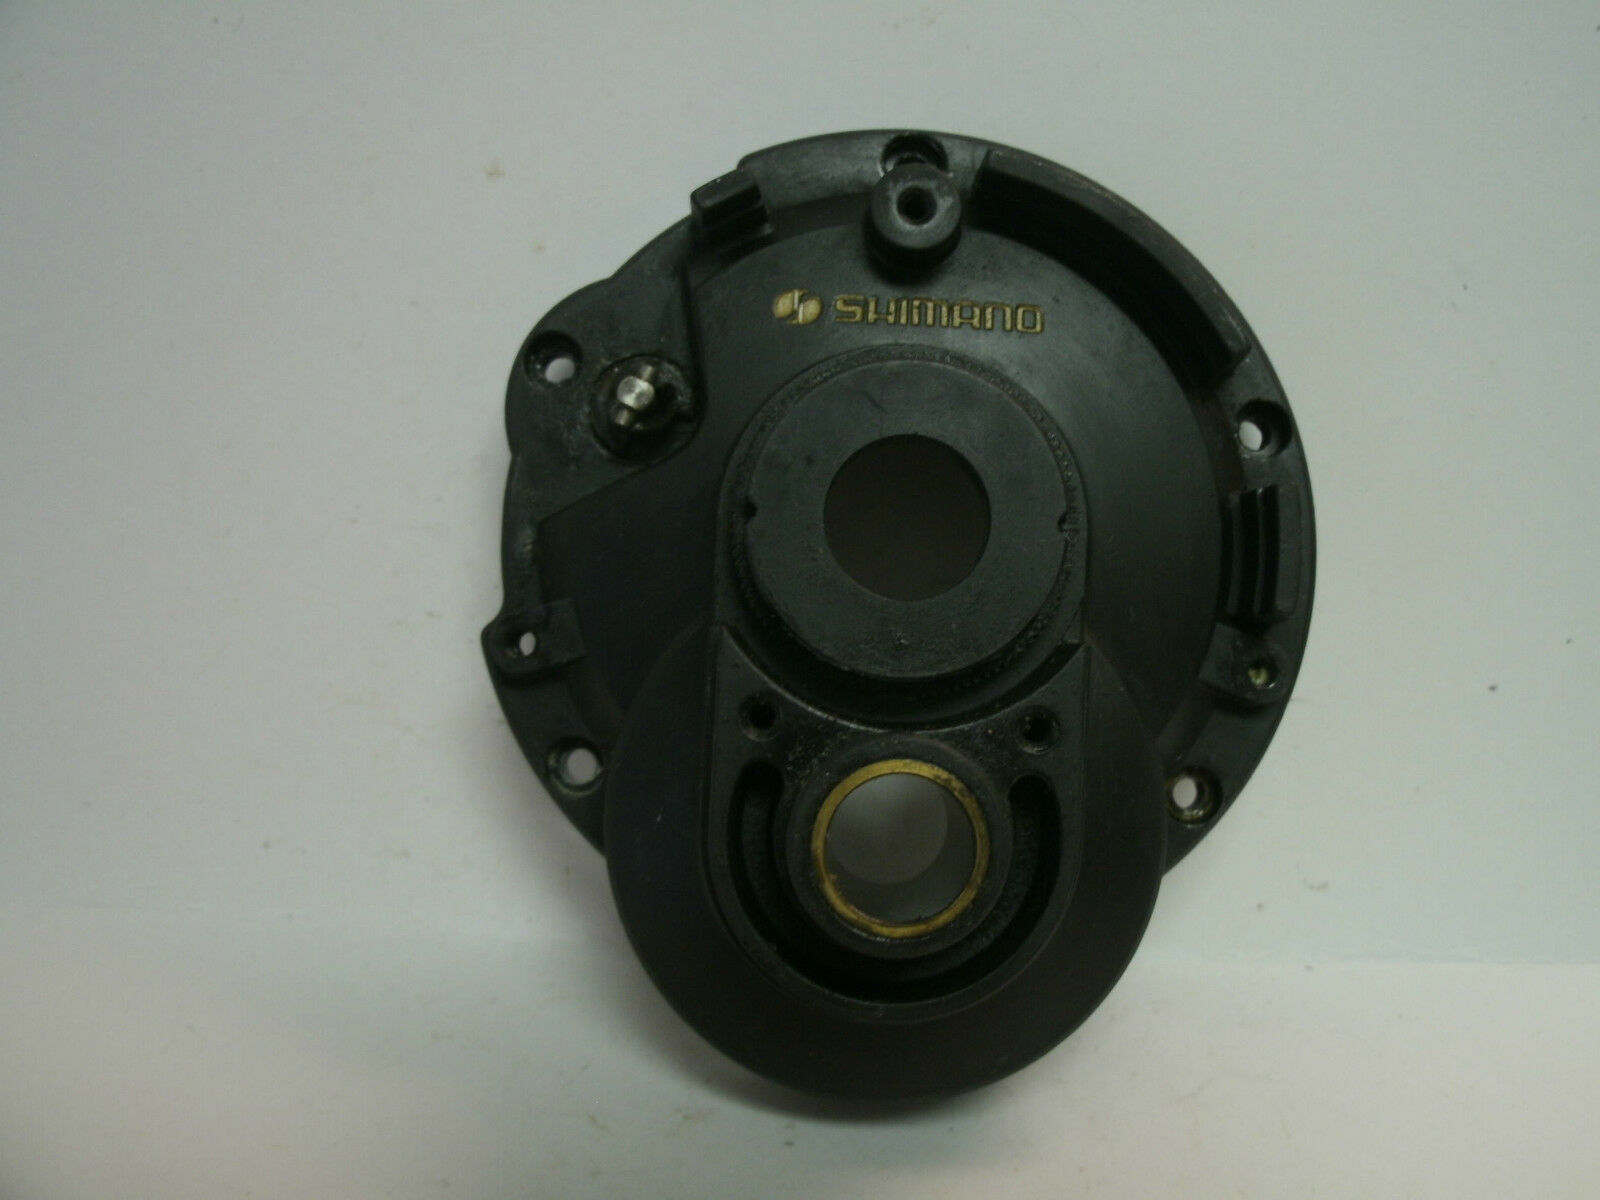 USED SHIMANO REEL PART - Beastmaster 20/30 2 Speed - Right Side Plate